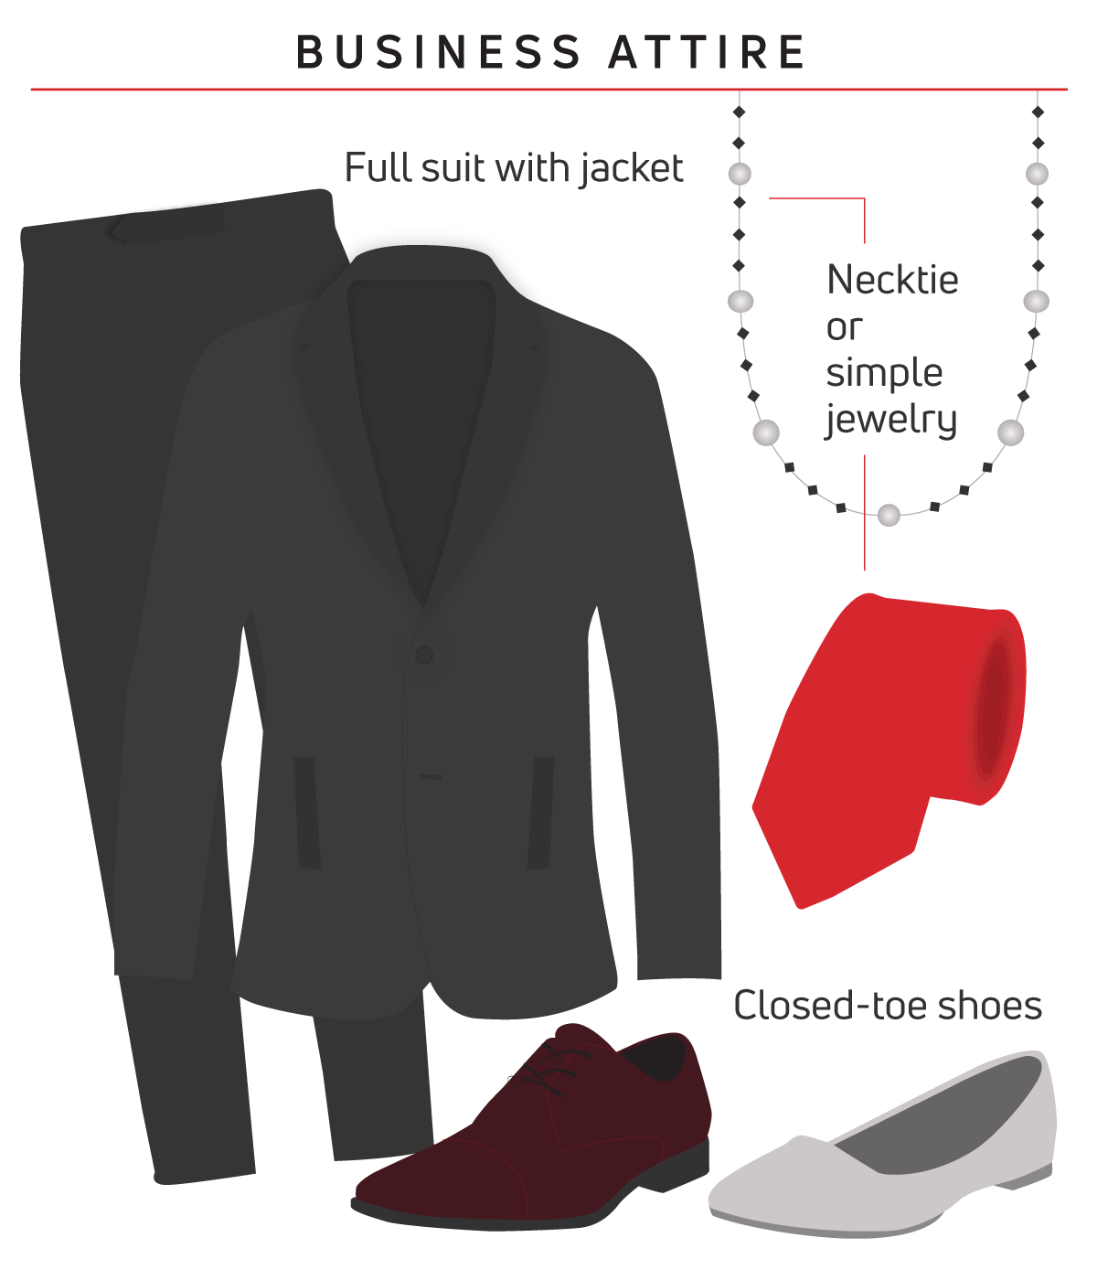 business attire: full suit with jacket, necktie or simple jewelry, closed-toe shoes